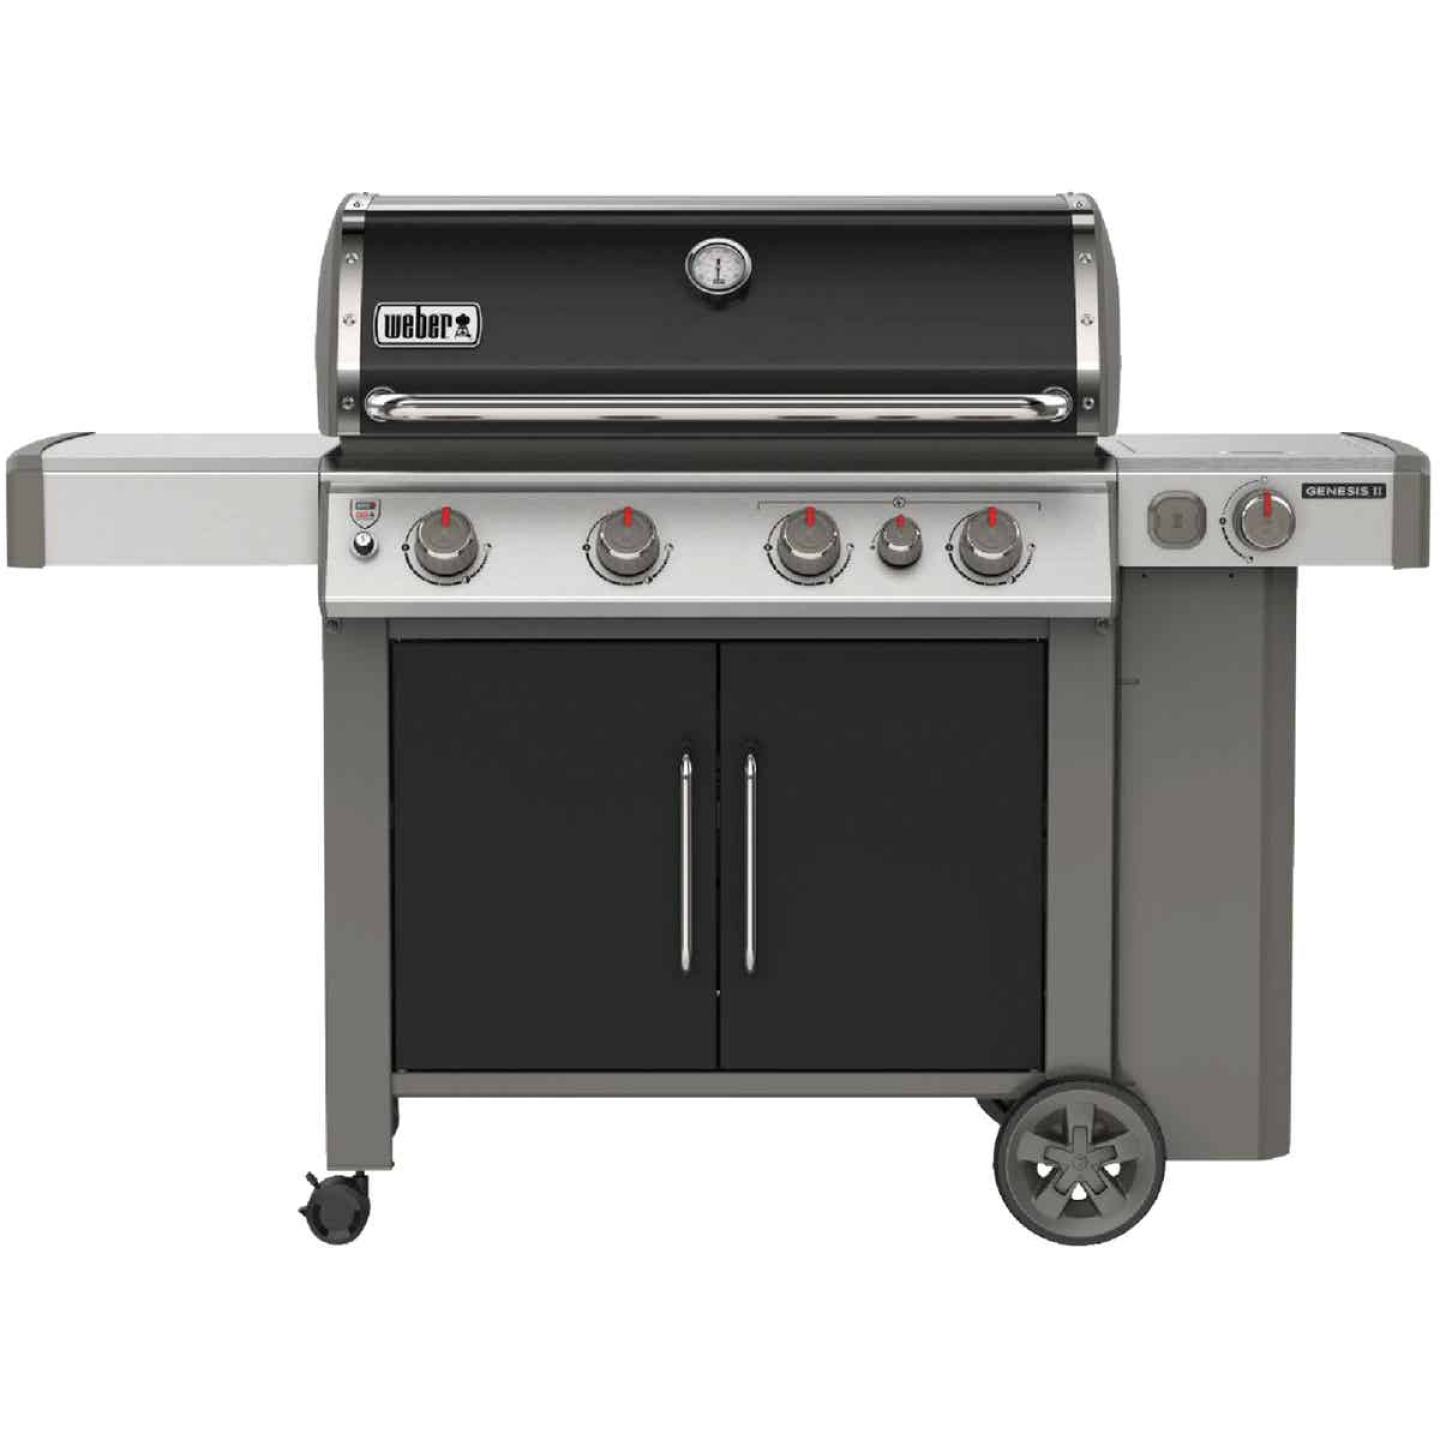 Weber Genesis II E-435 4-Burner Black 48,000 BTU LP Gas Grill with 12,000 BTU Side -Burner Image 1